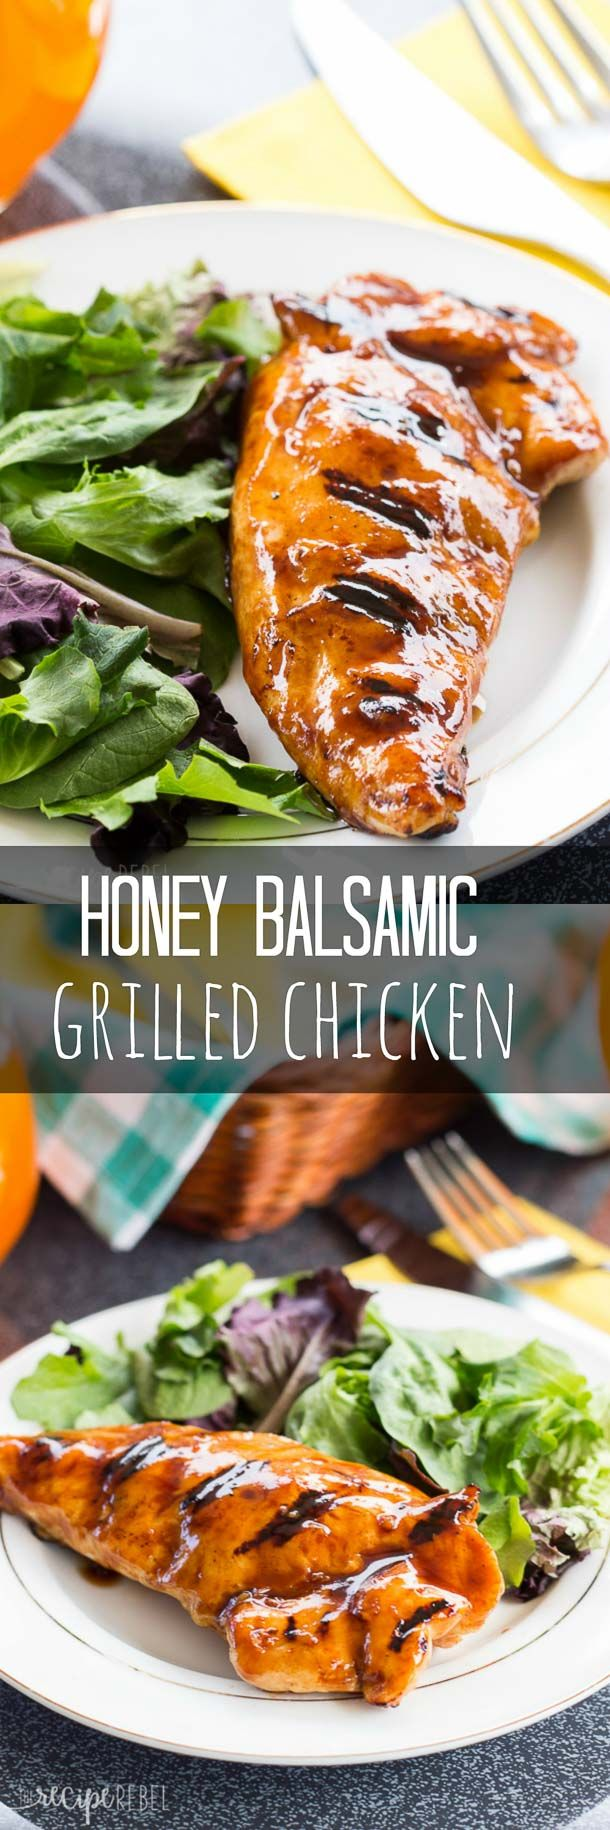 Honey Balsamic Grilled Chicken: Perfectly moist grilled chicken in a sweet and tangy honey balsamic sauce -- a great way to spice up your grilling this summer! www.thereciperebel.com